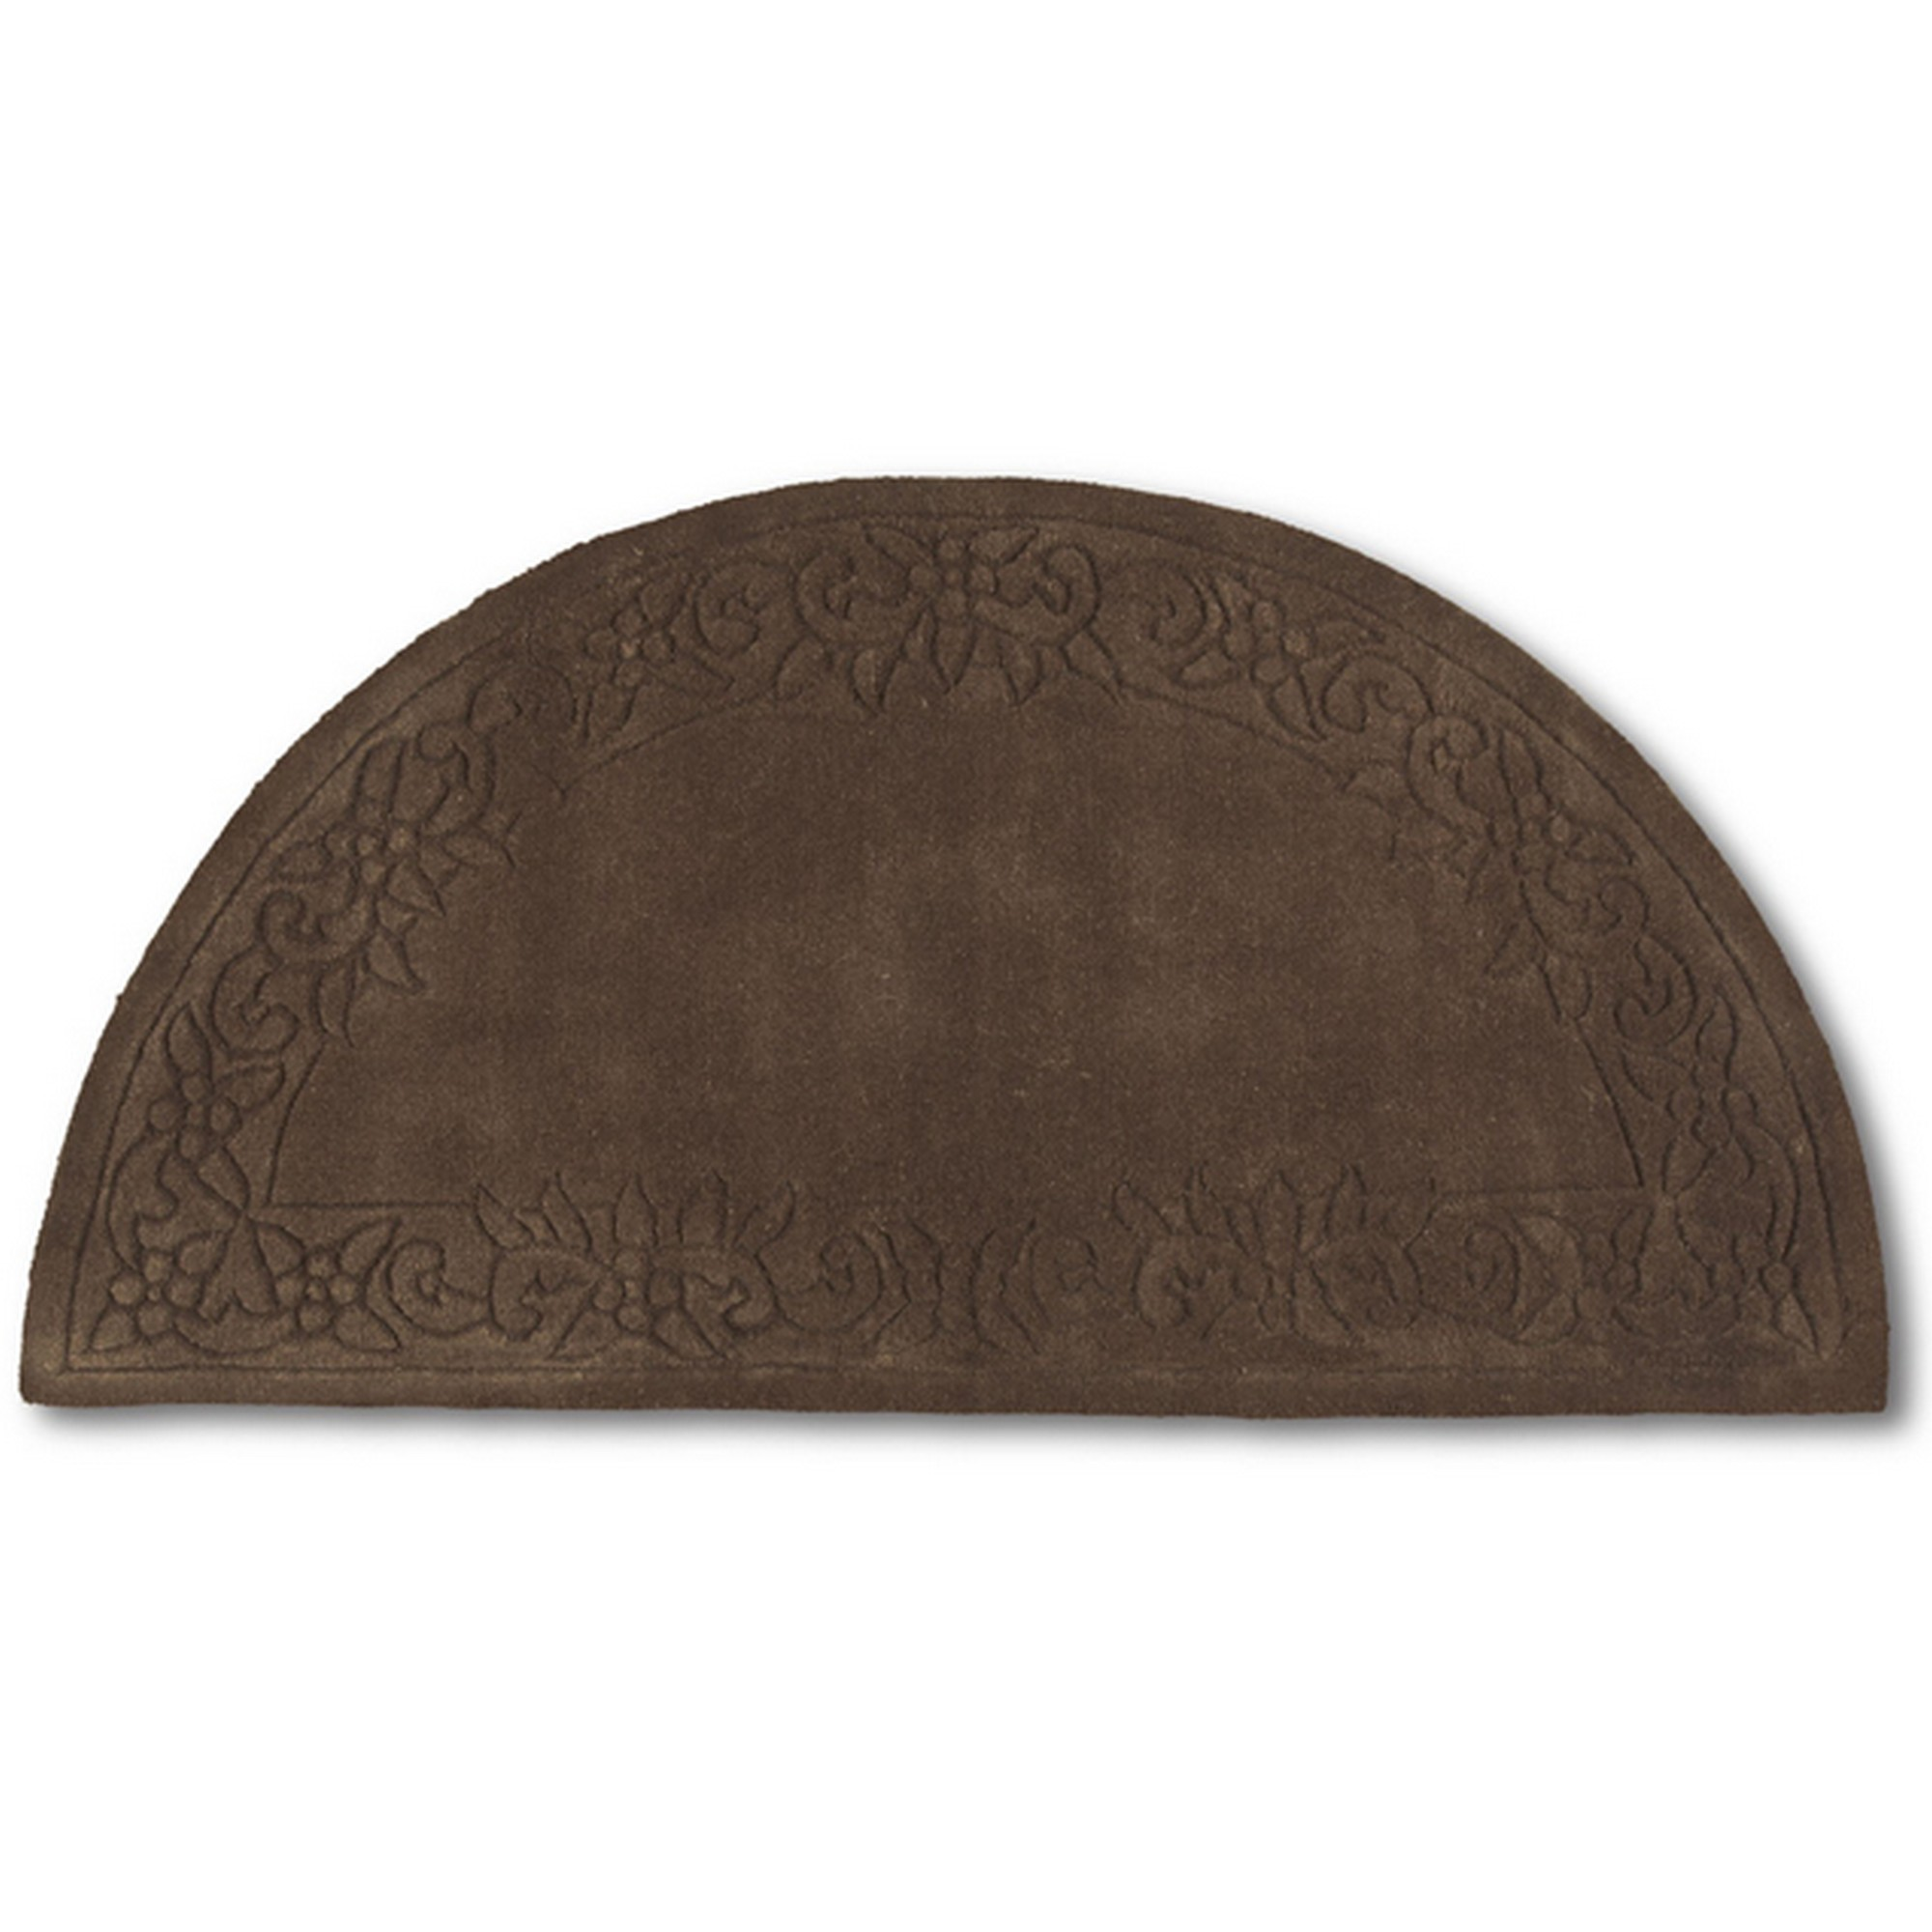 Royale Half Moon - Traditional Indian Wool in Chocolate